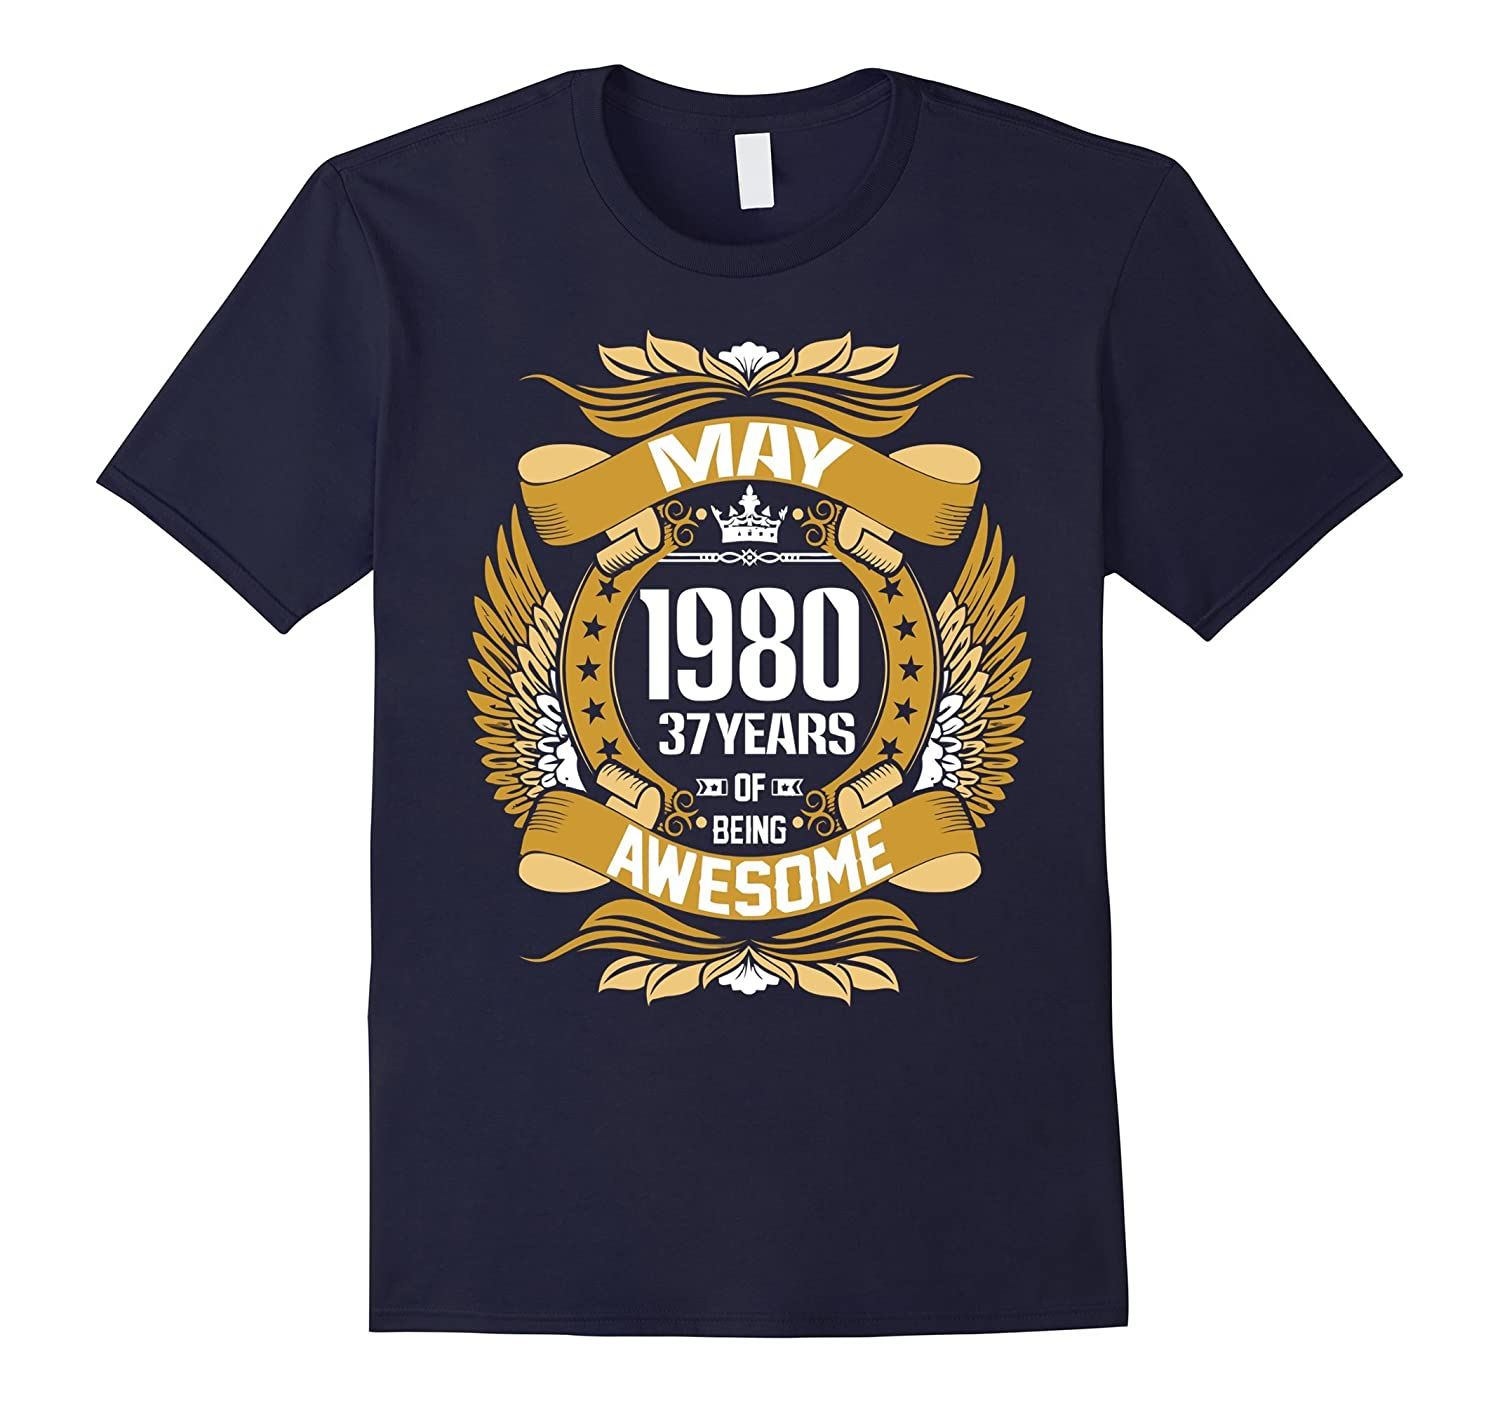 May 1980 37 years of being awesome t shirt-Vaci